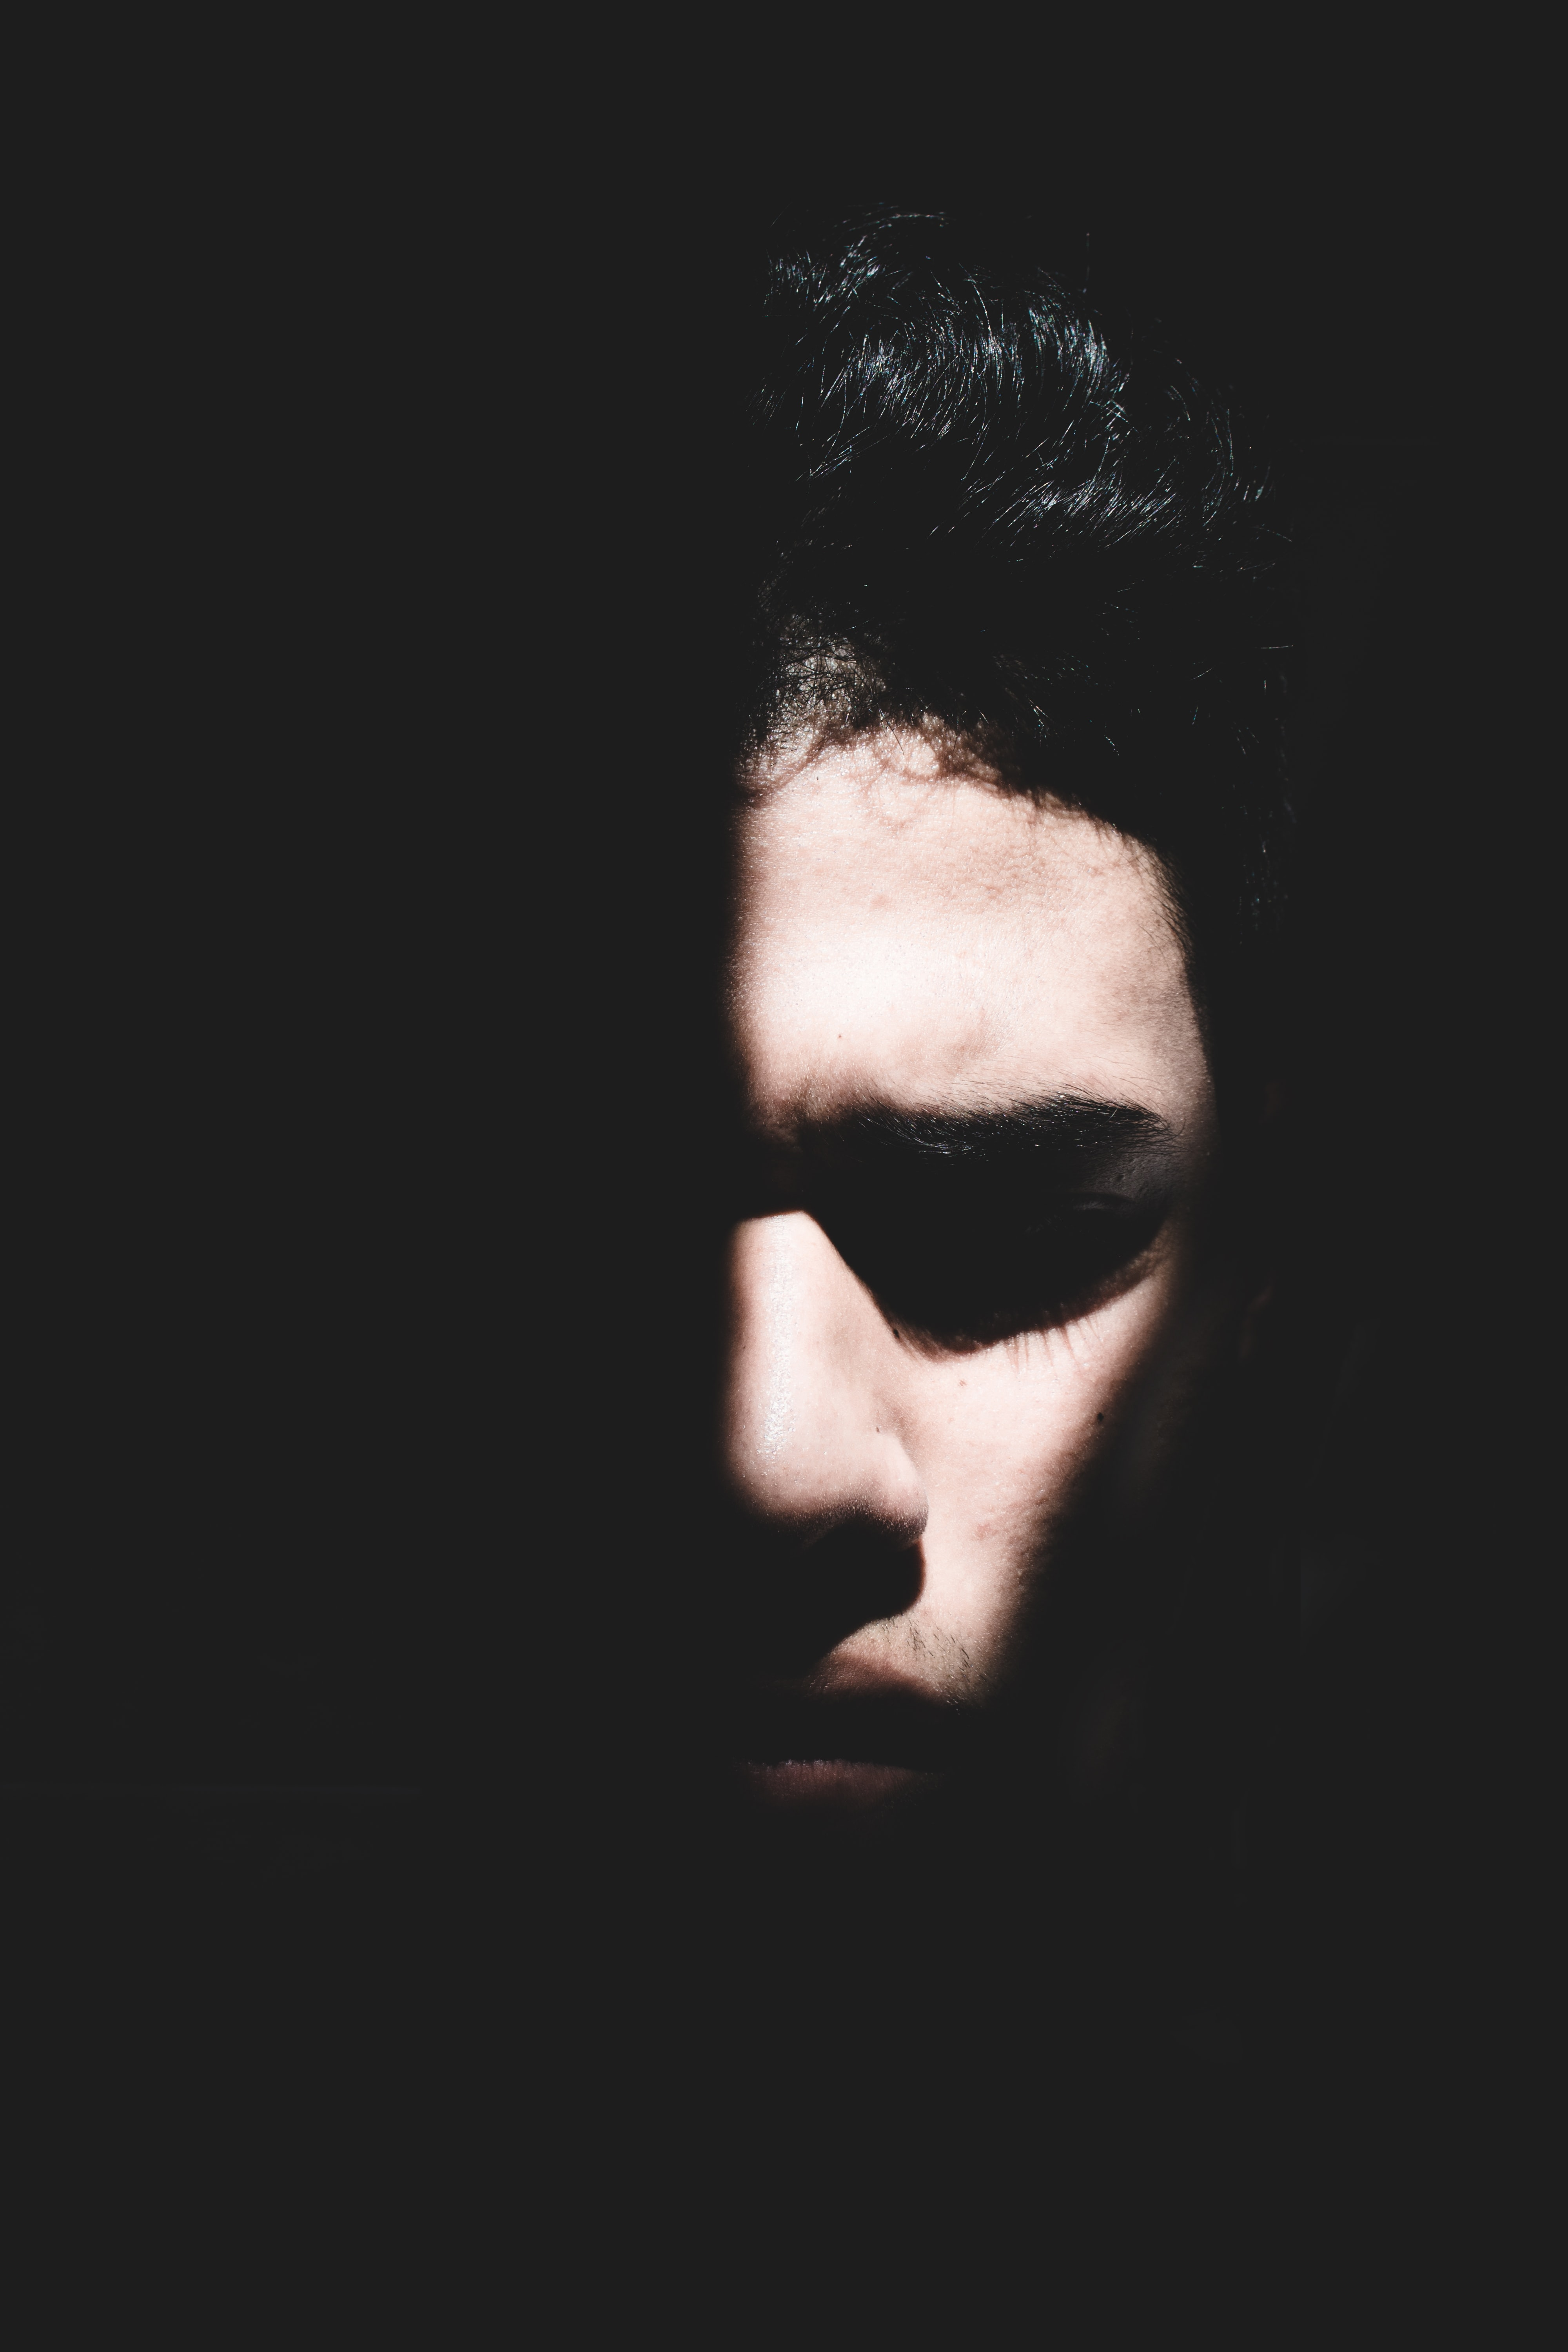 Pensive young man with half his face in light and half in the shadows